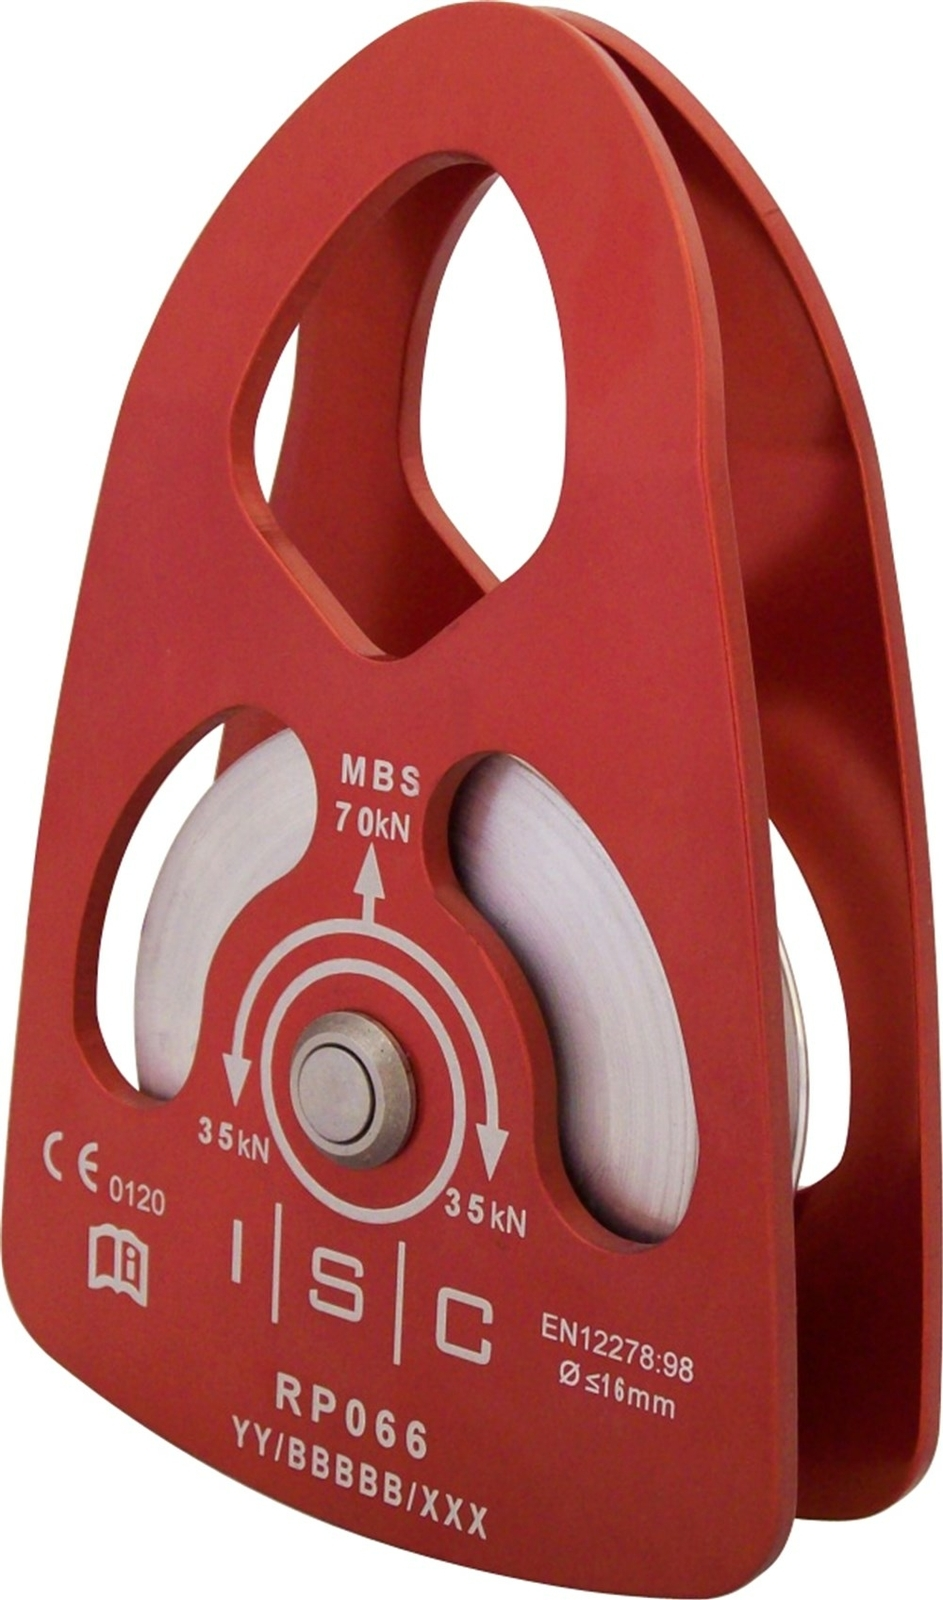 ISC Prusik Minding Pulley Large